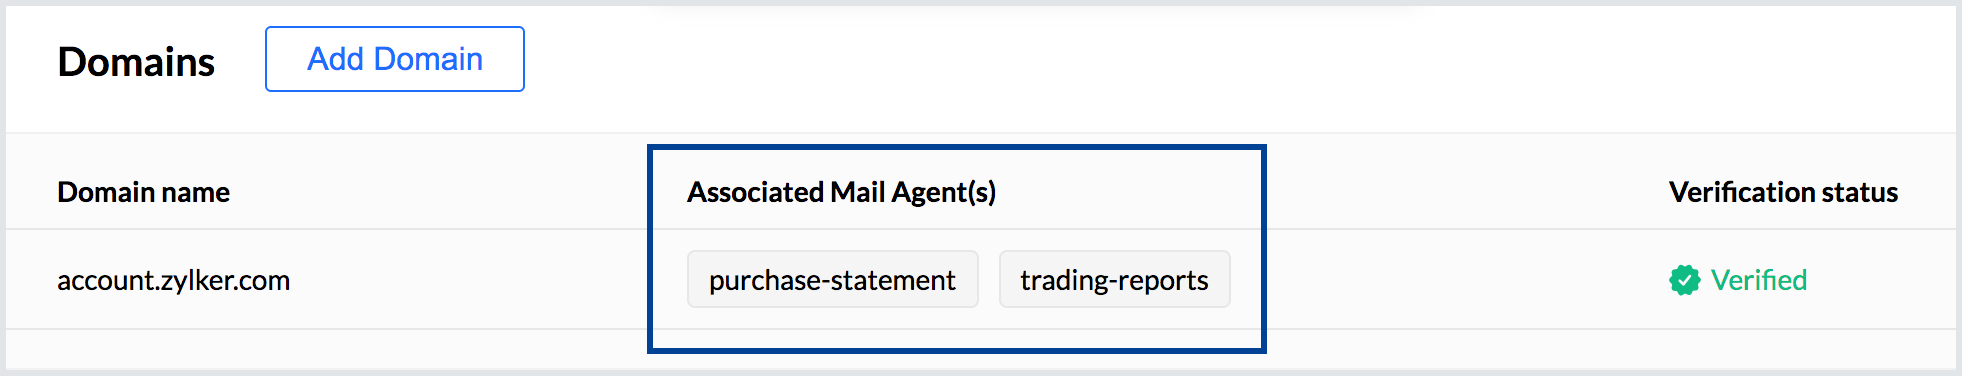 Now your domain is associated with multiple Mail Agents